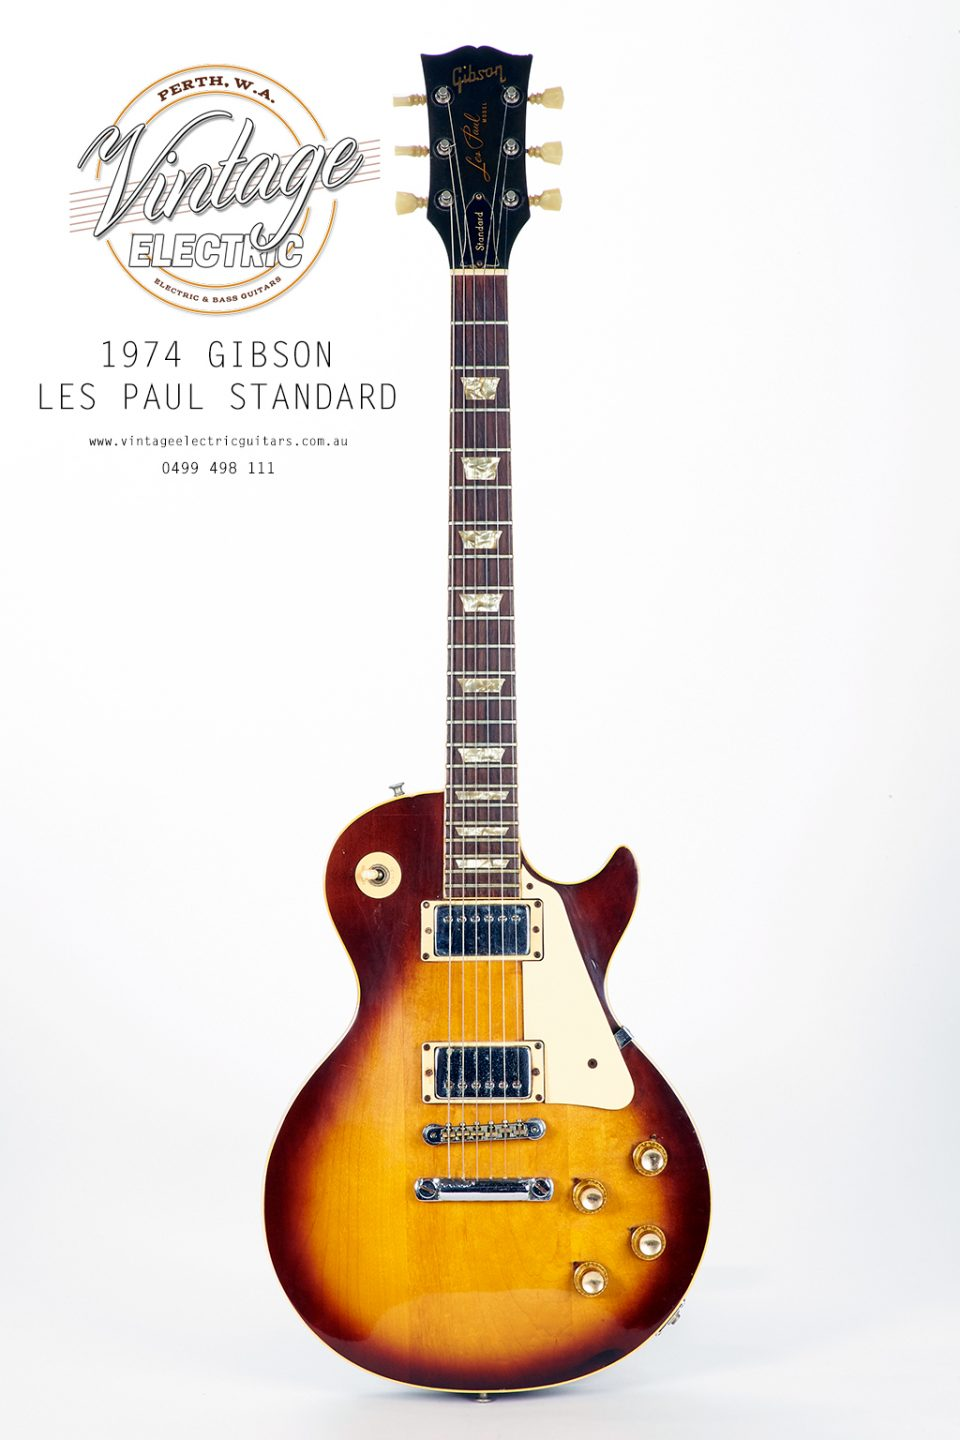 1974 Gibson Les Paul Standard Vintage Guitar USA